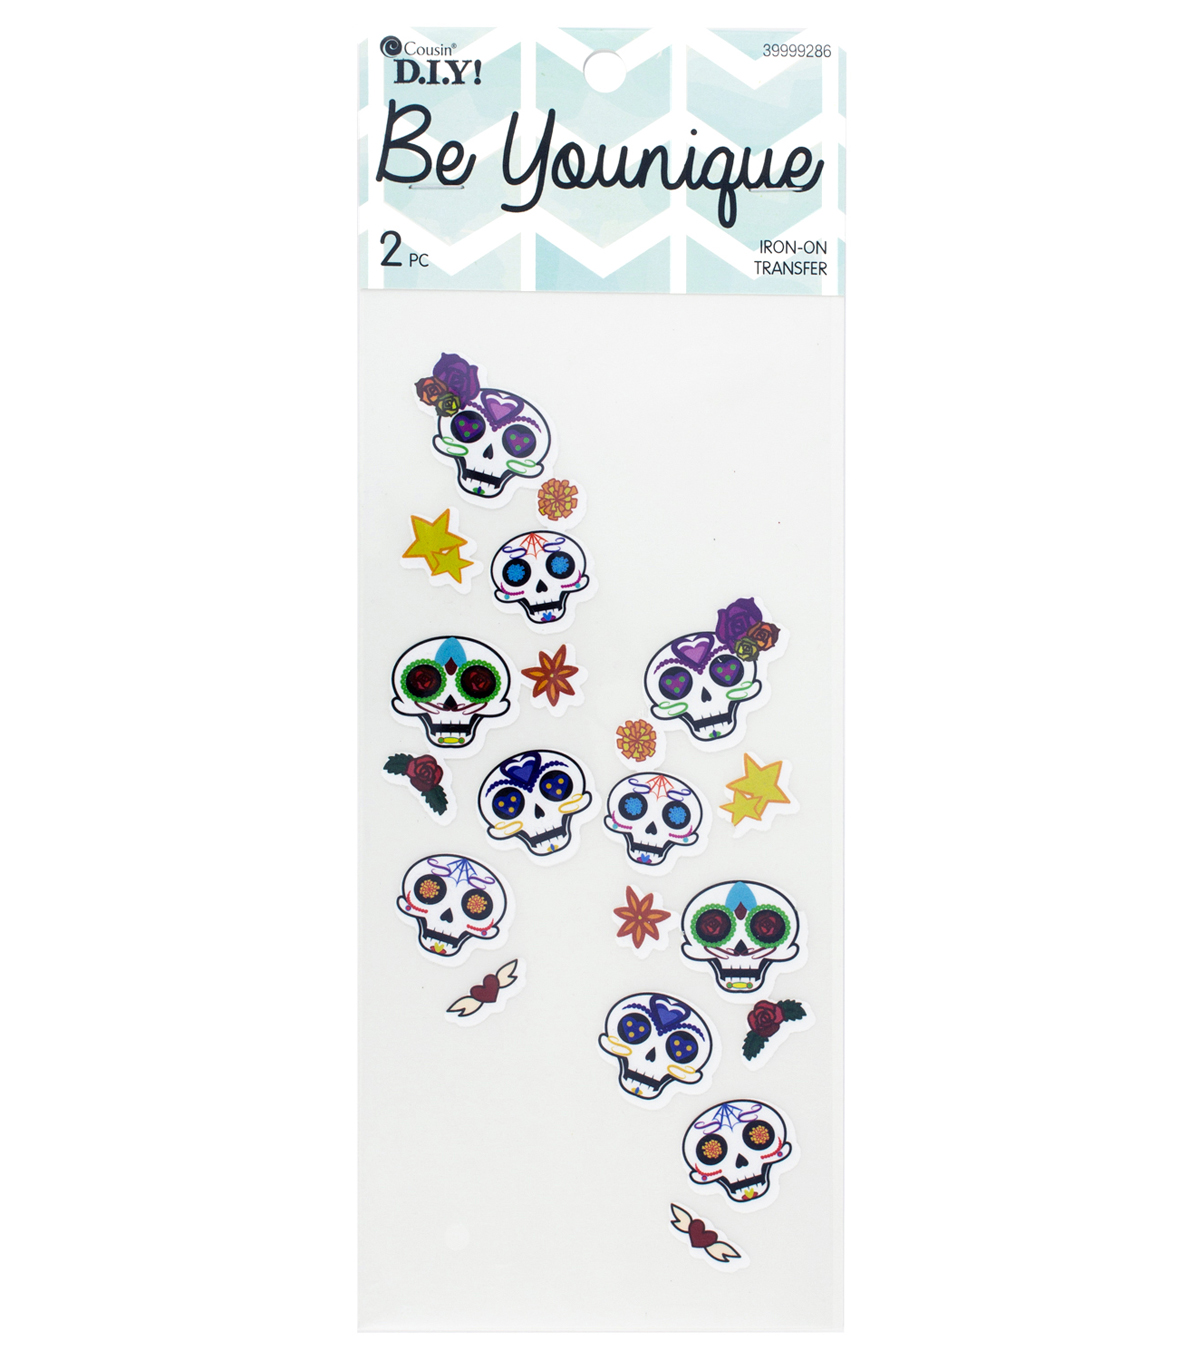 Cousin® DIY Be Younique 2 Pack Sleeve Iron-On Transfer-Sugar Skulls